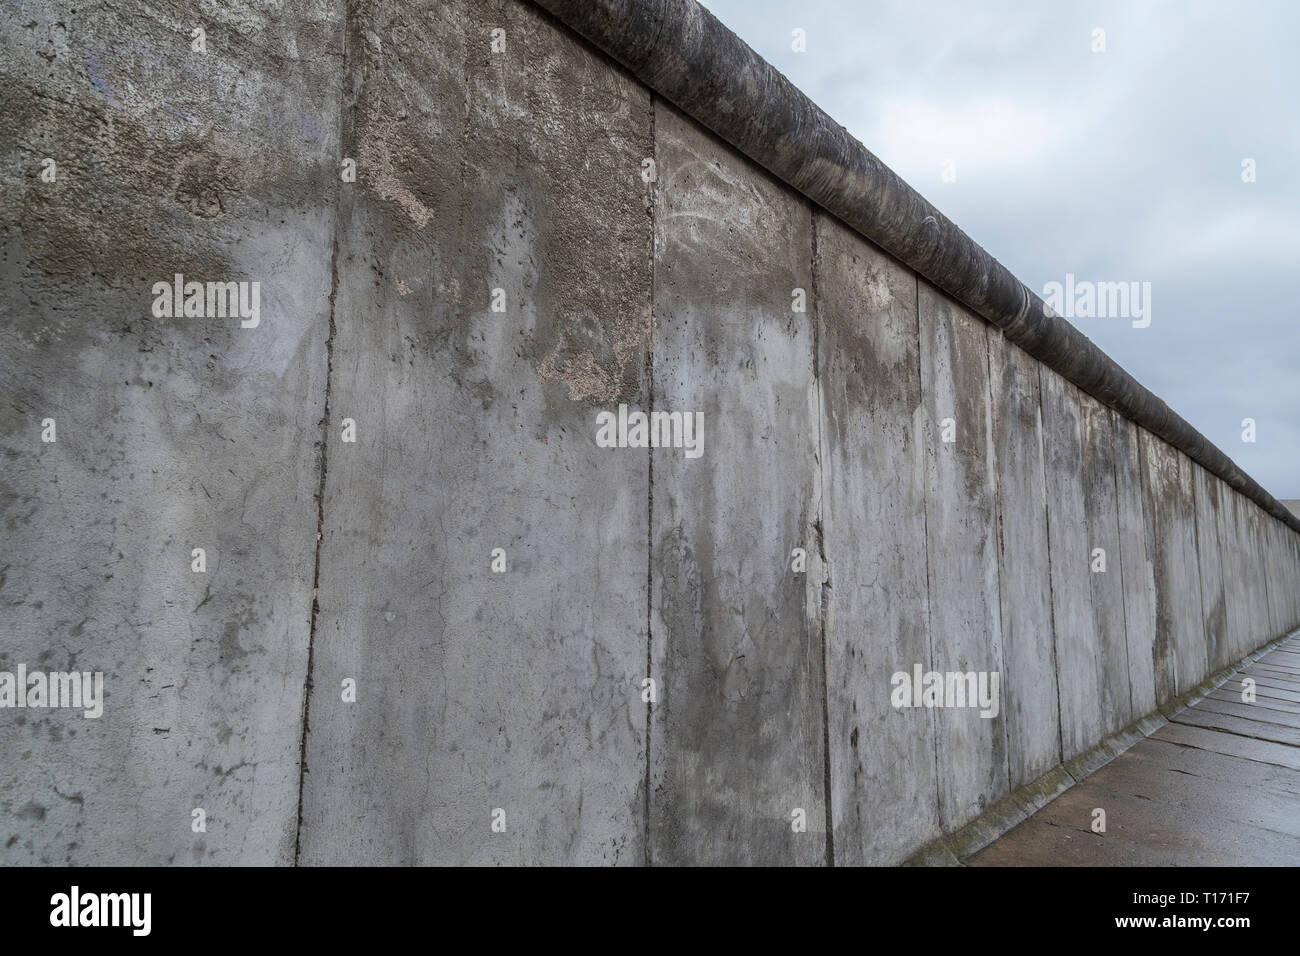 Side view of a section of the original Berlin Wall at the Berlin Wall Memorial (Berliner Mauer) in Berlin, Germany, on a cloudy day. Stock Photo